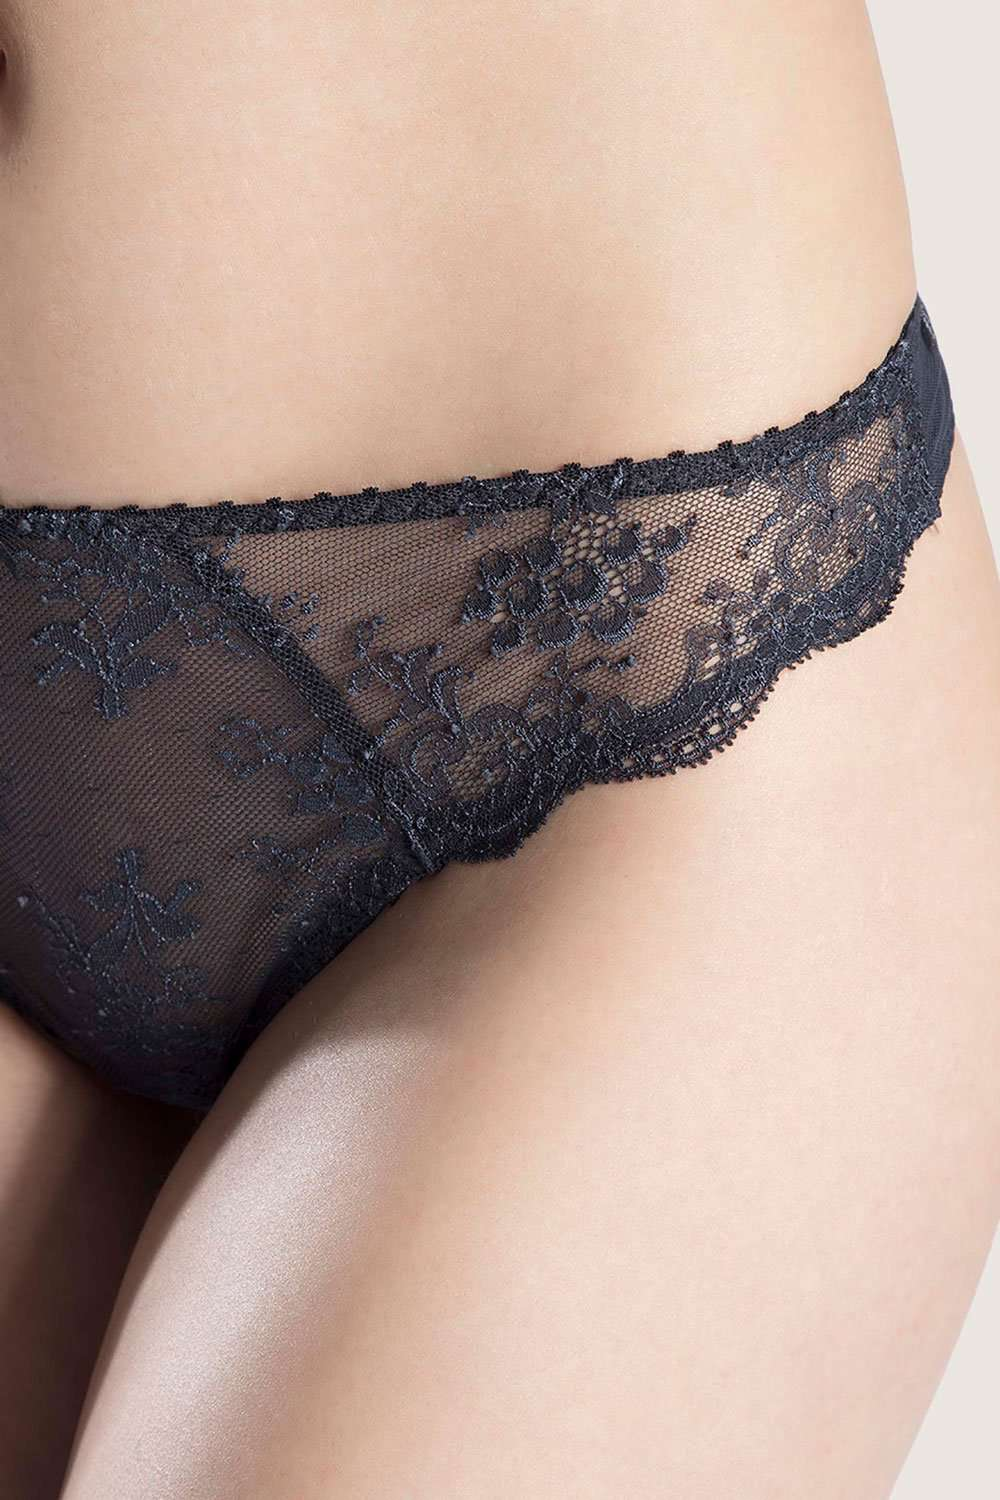 Aubade à l'Amour Tanga Thong - French Lingerie - Naughty Knickers